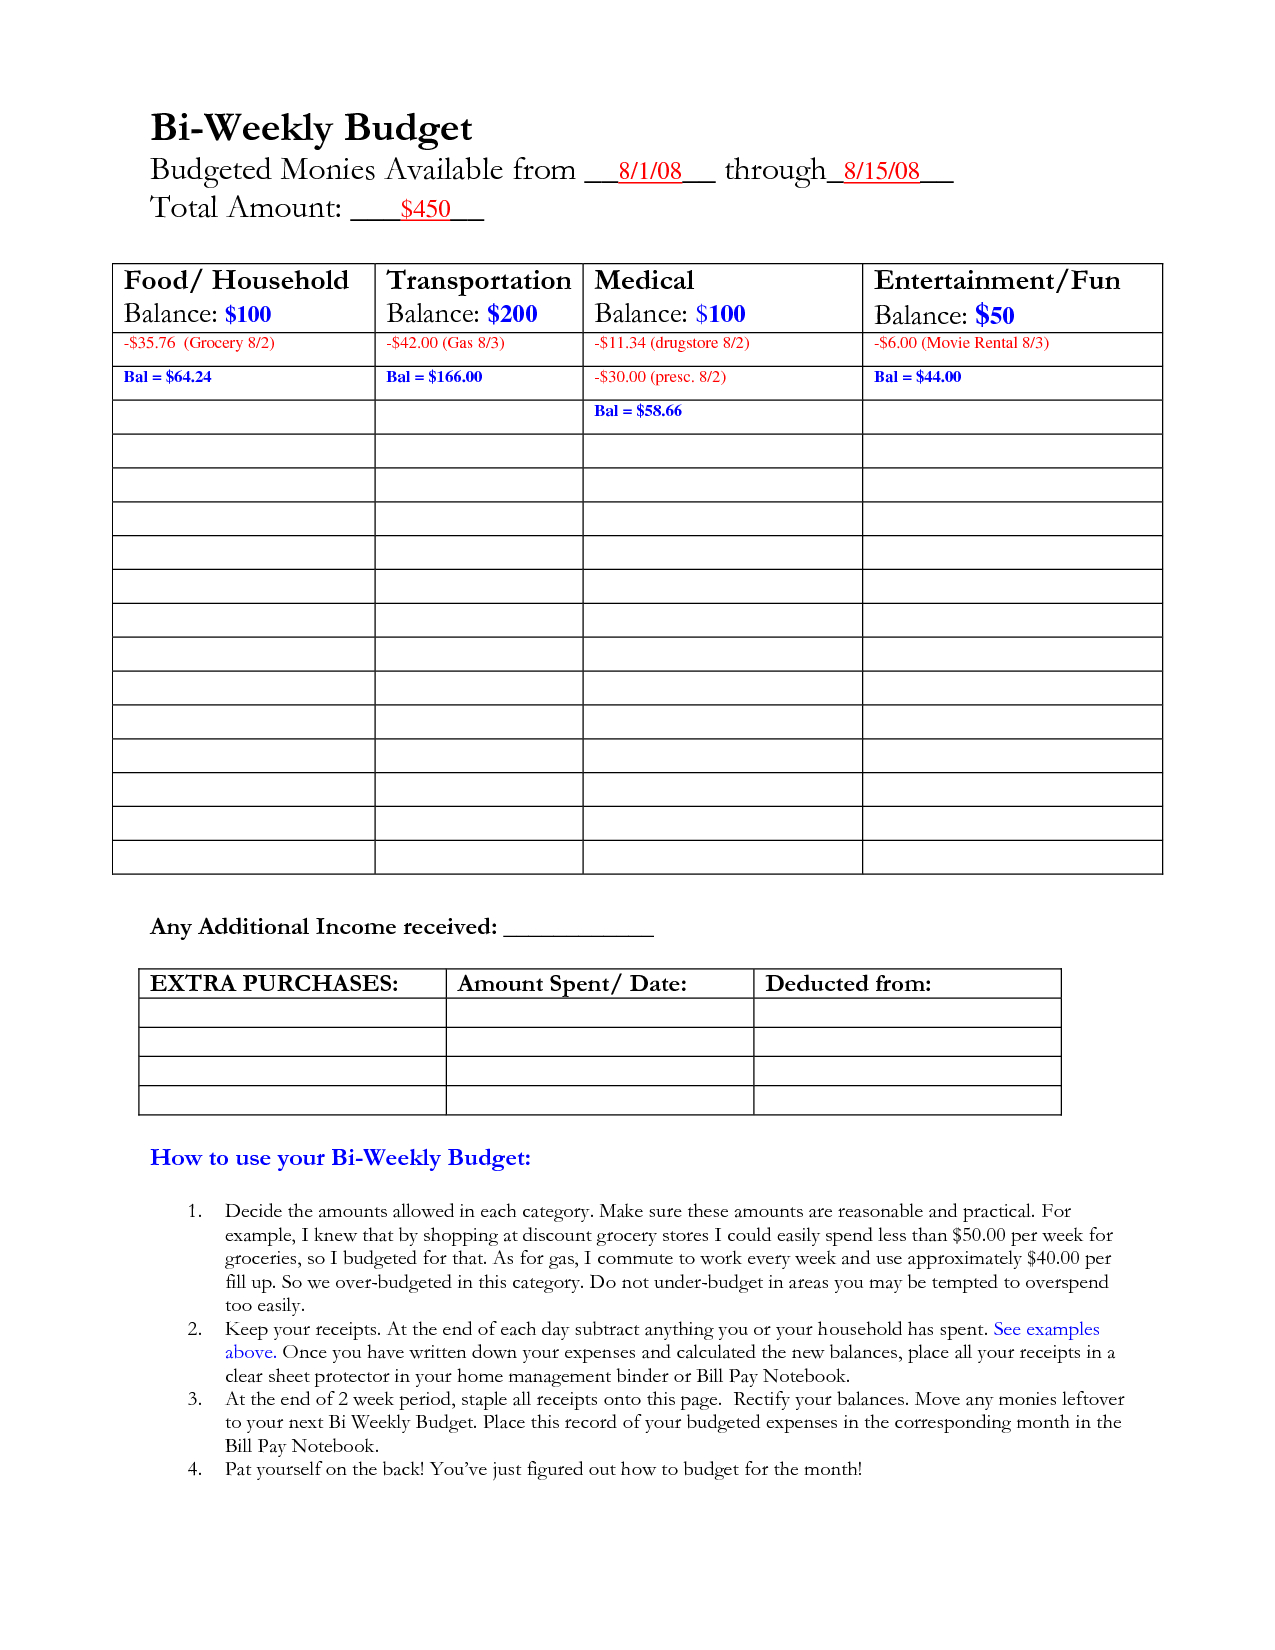 Bi Weekly Budget Calculator Spreadsheet Bonfires And Wine Livin - Free Printable Bi Weekly Budget Template